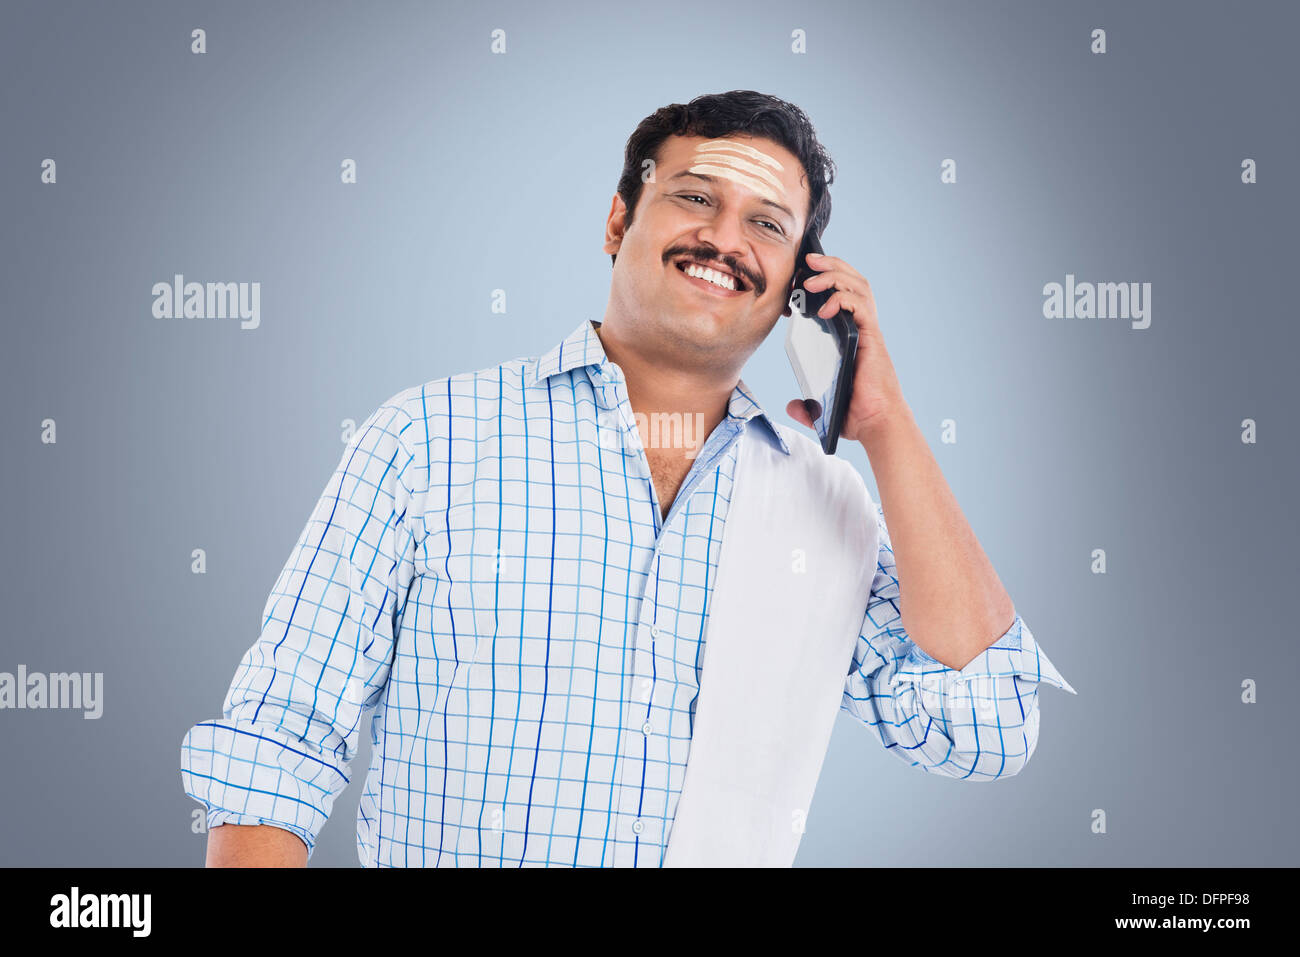 South Indian man talking on a mobile phone and smiling Stock Photo